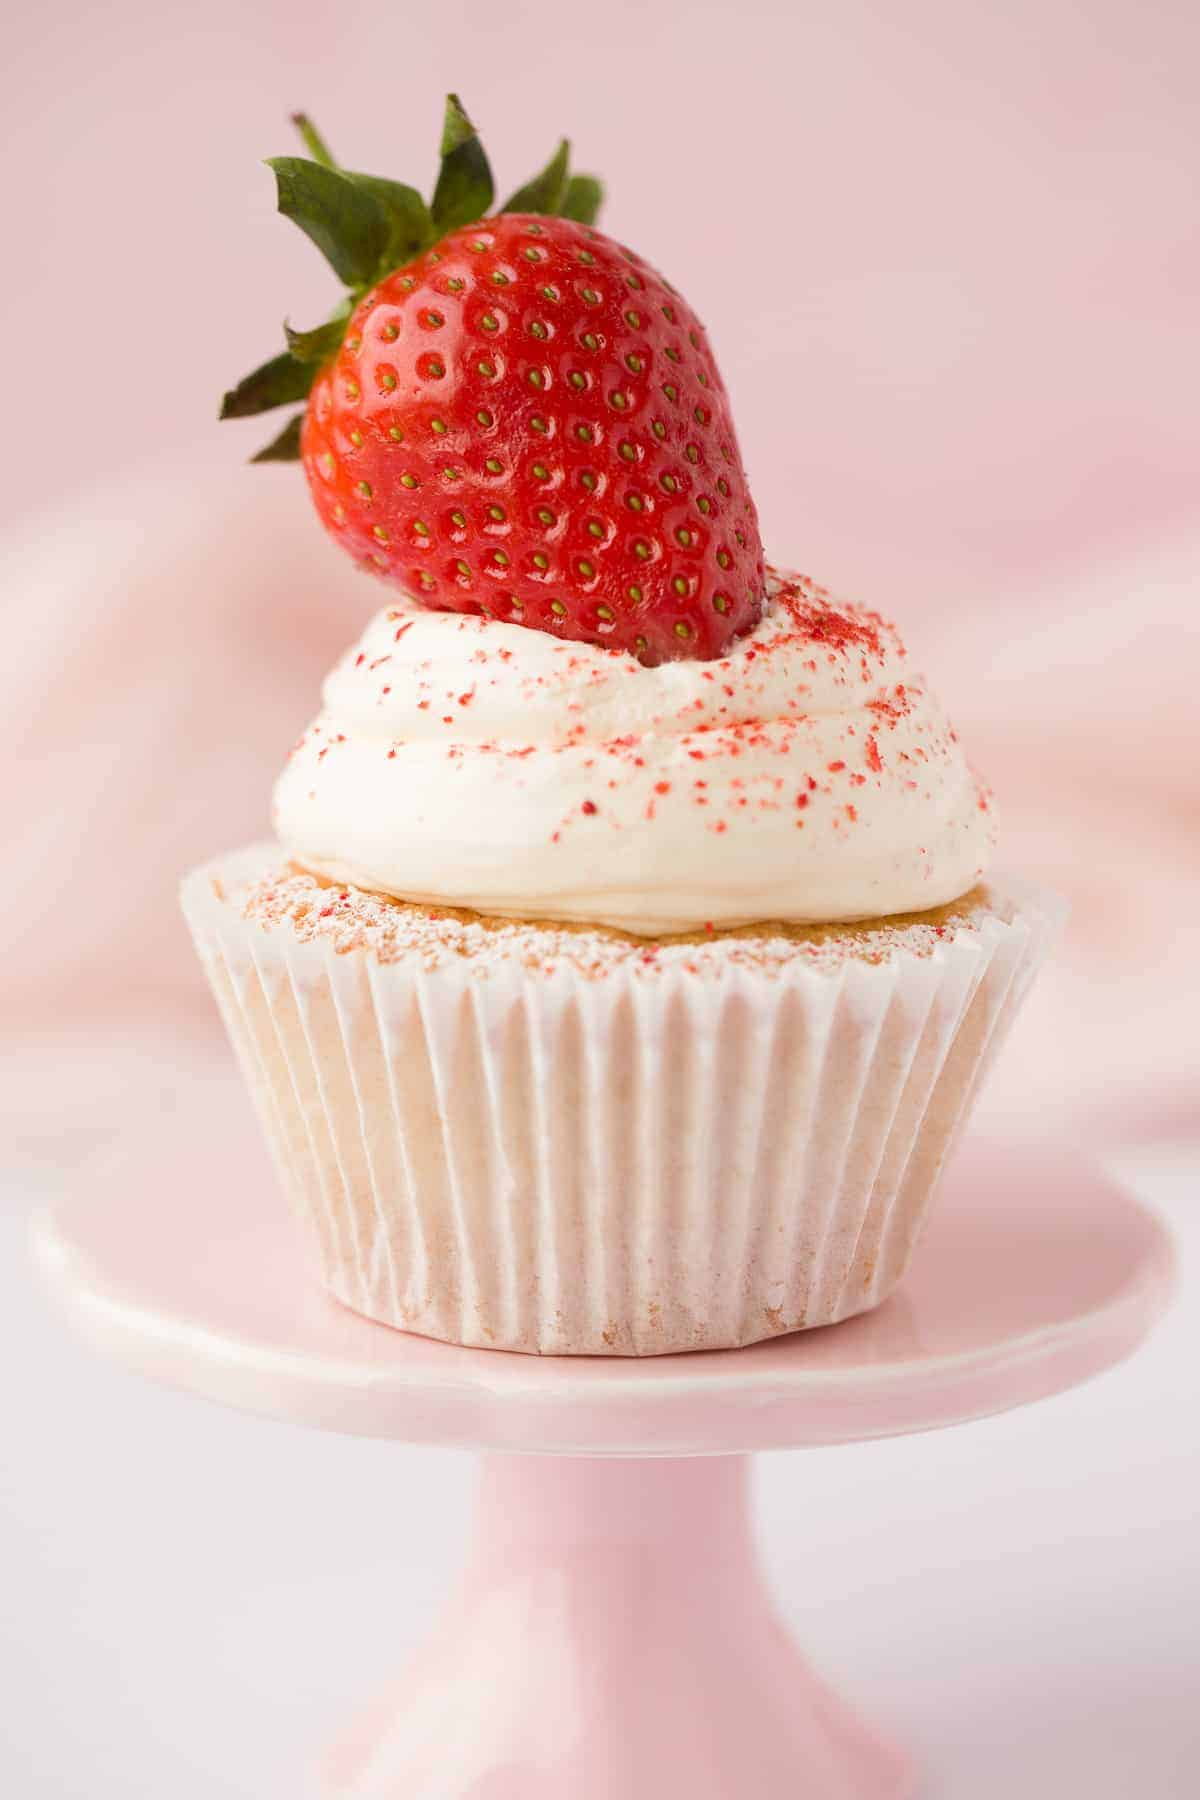 A Victoria Sponge Cupcake with a whipped cream topping and strawberry decoration.